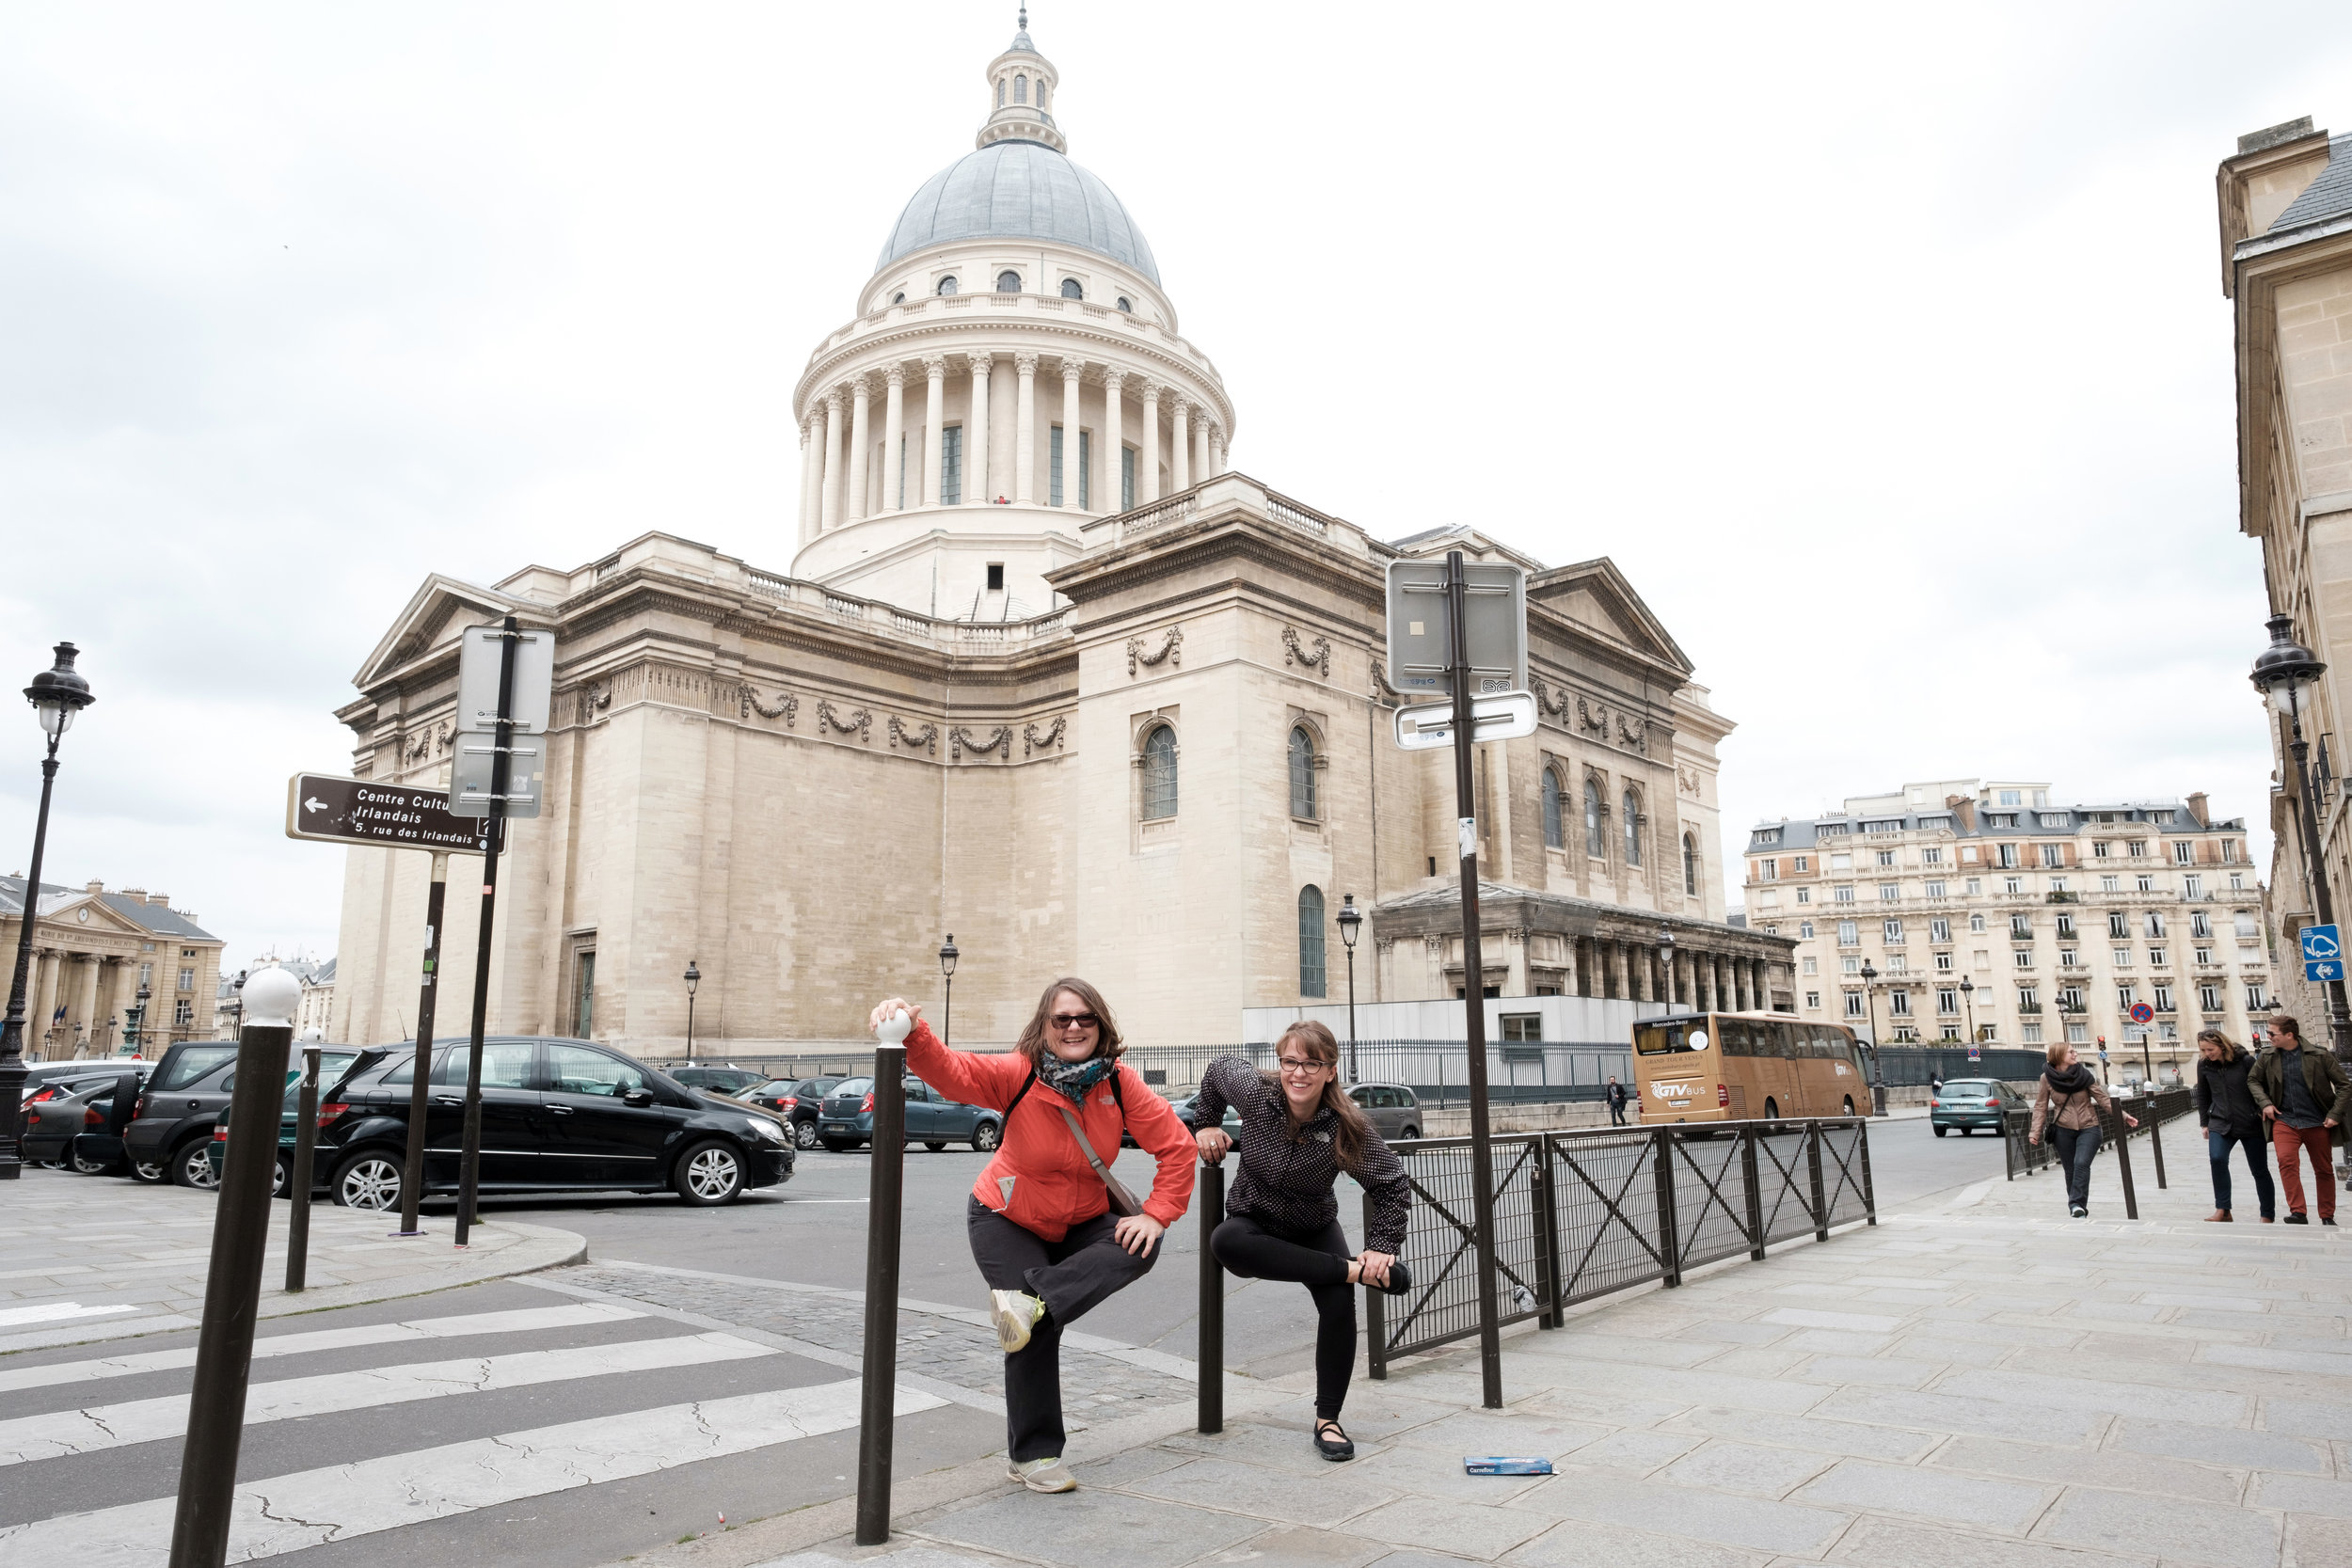 33,000 steps in Paris in one day meant stretching was a necessity   FUJIFILM X-Pro2,    XF 14mm f/2.8 R